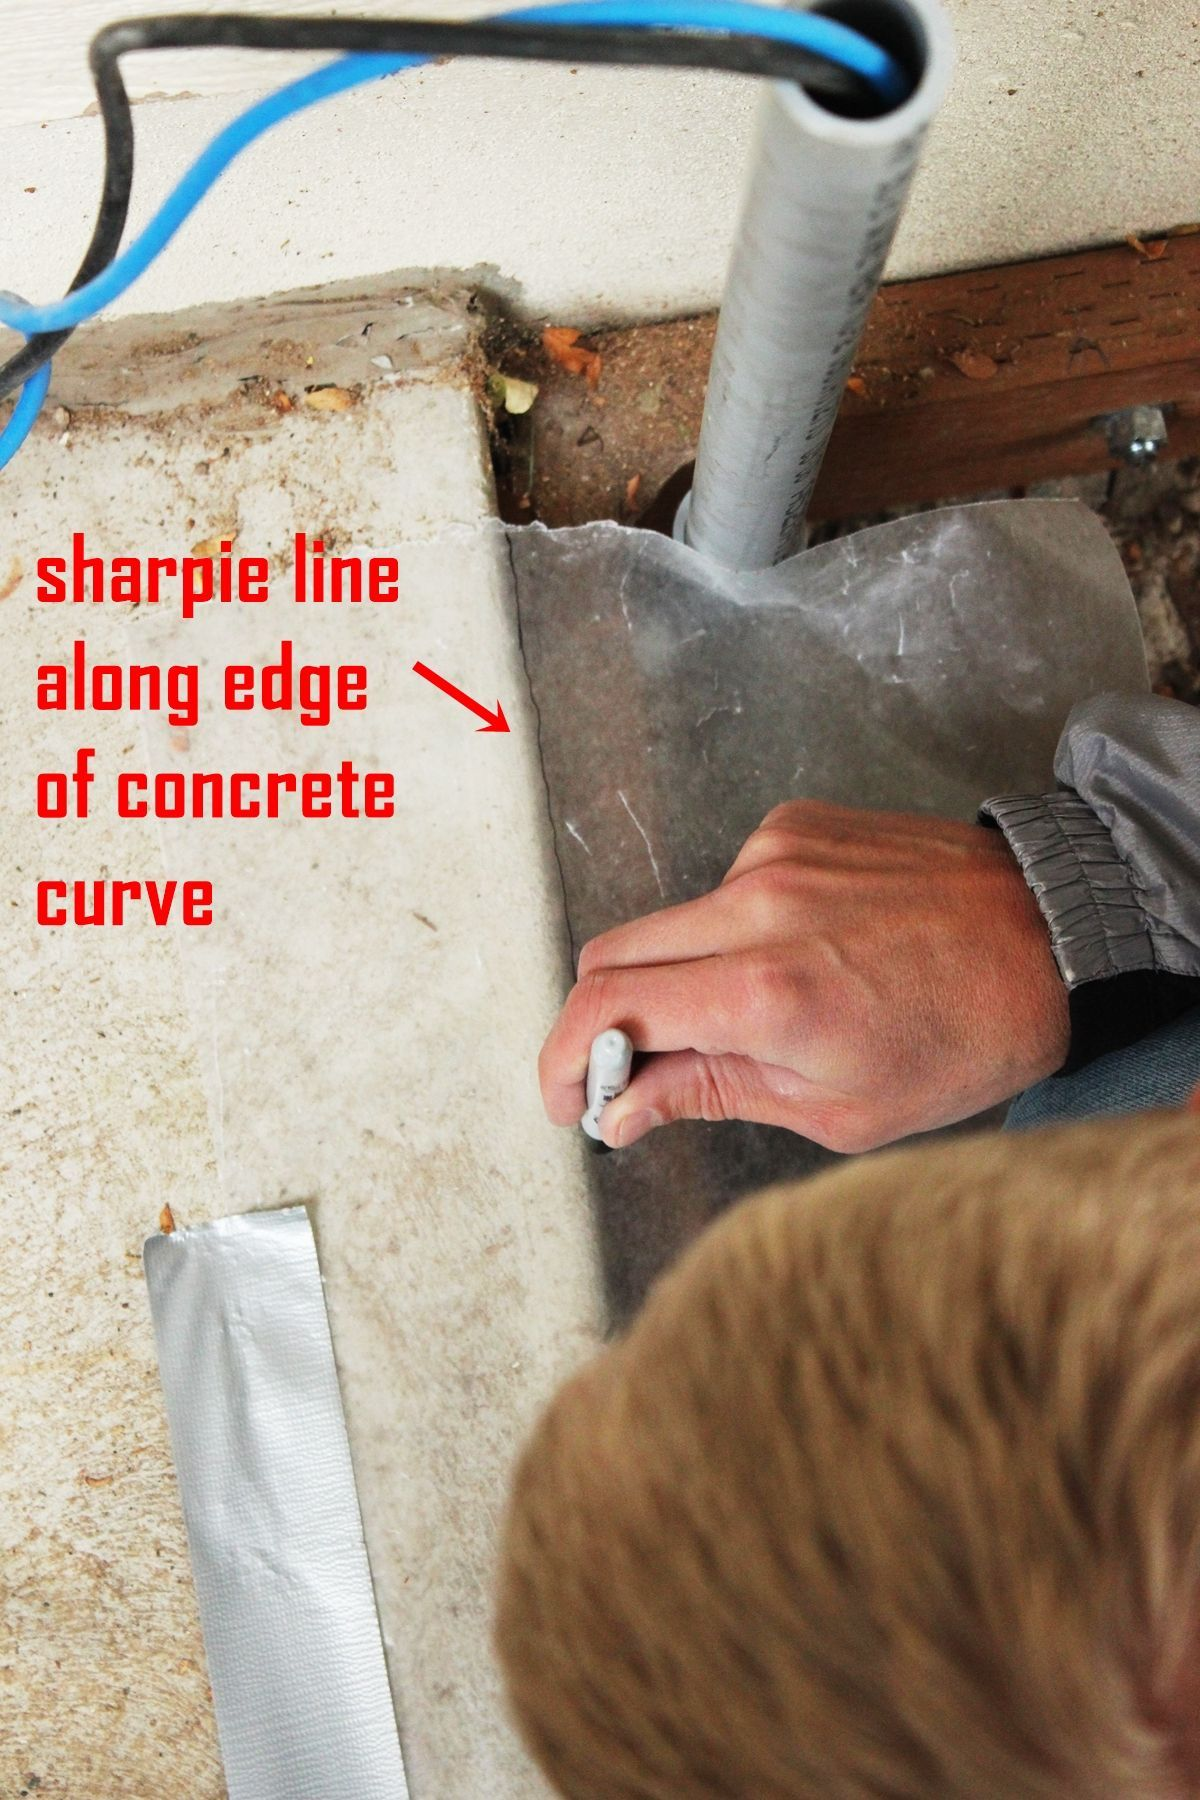 How to Install Curved Deck Floor-Use a dark permanent marker to lightly trace the edge of the curve